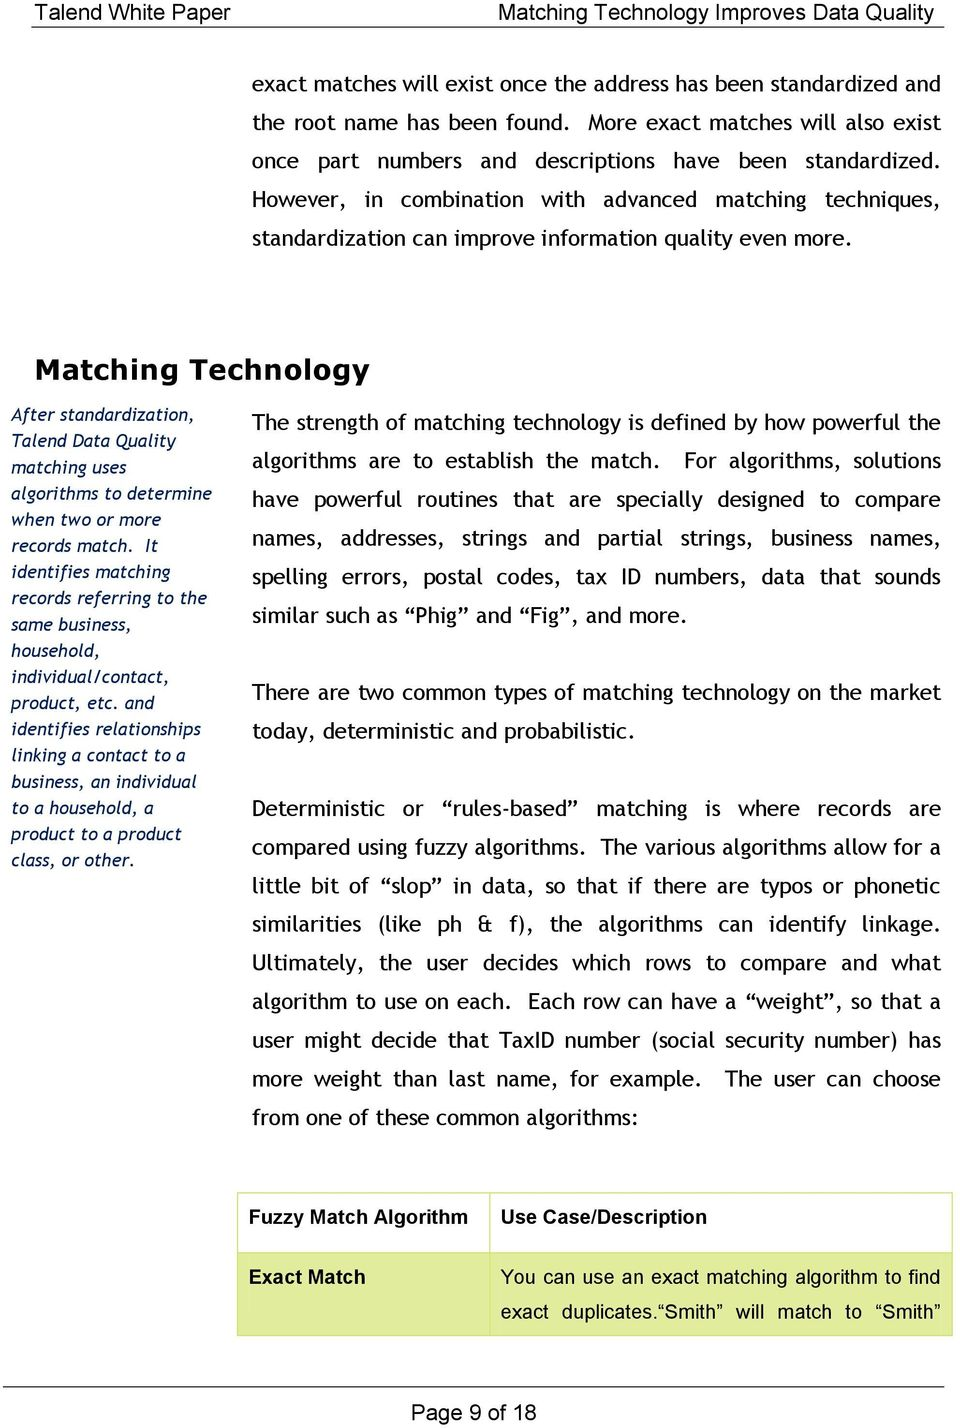 How  Matching Technology Improves  White Paper - PDF